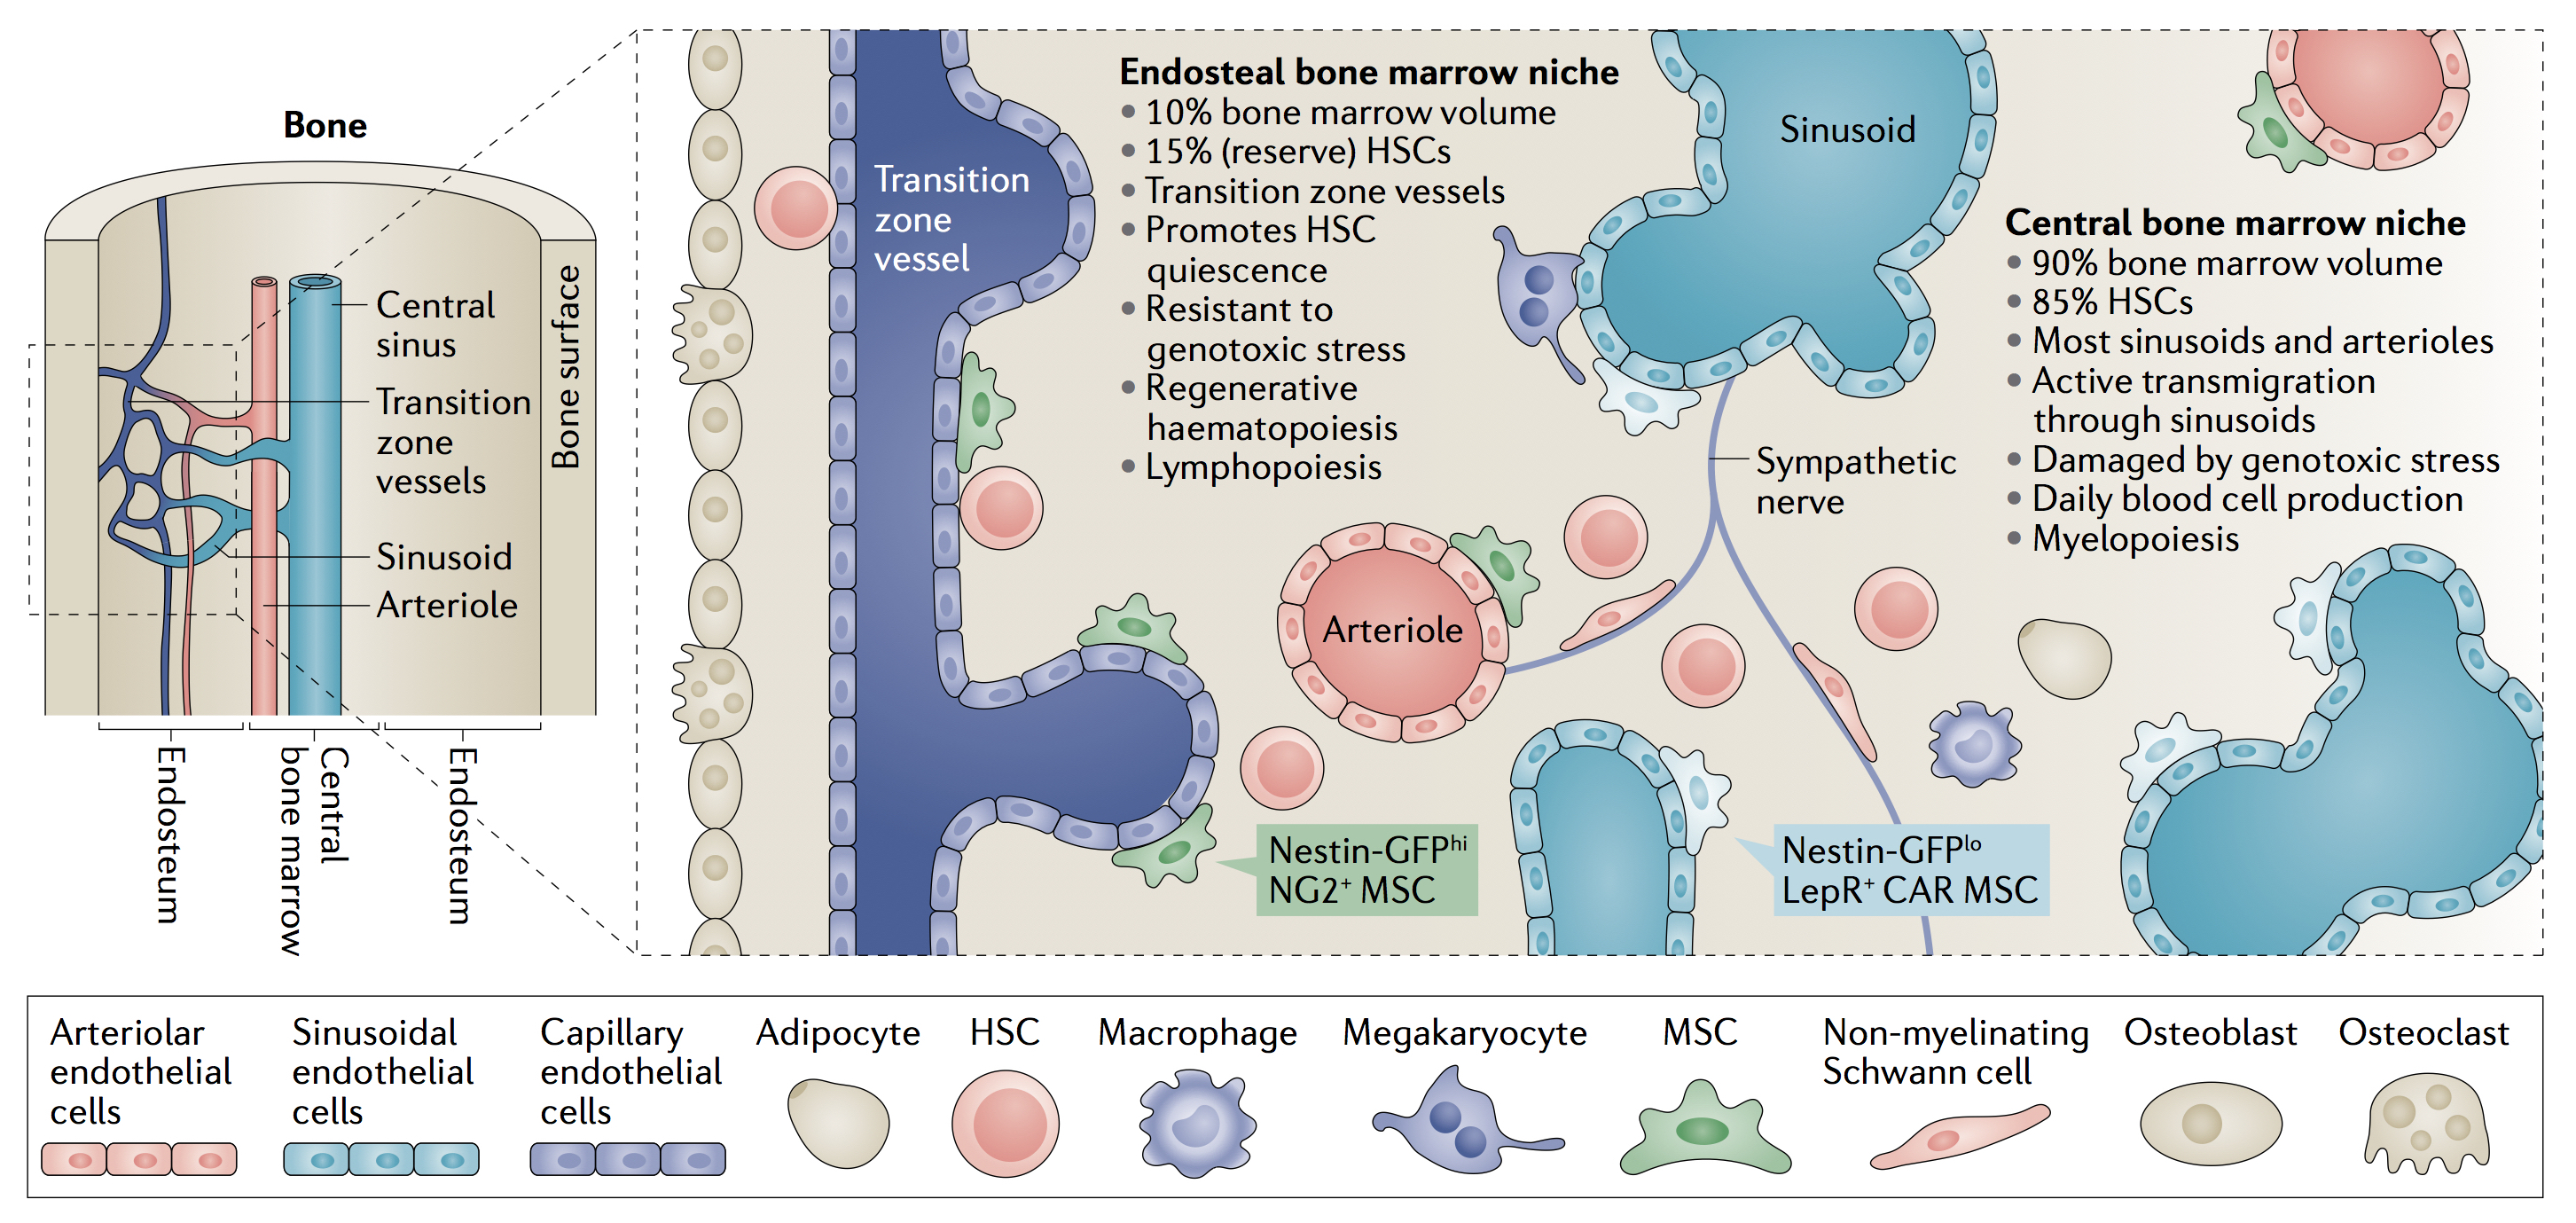 Diagram showing main features of anatomically-defined haematopoietic stem cell niches in the mouse bone marrow.